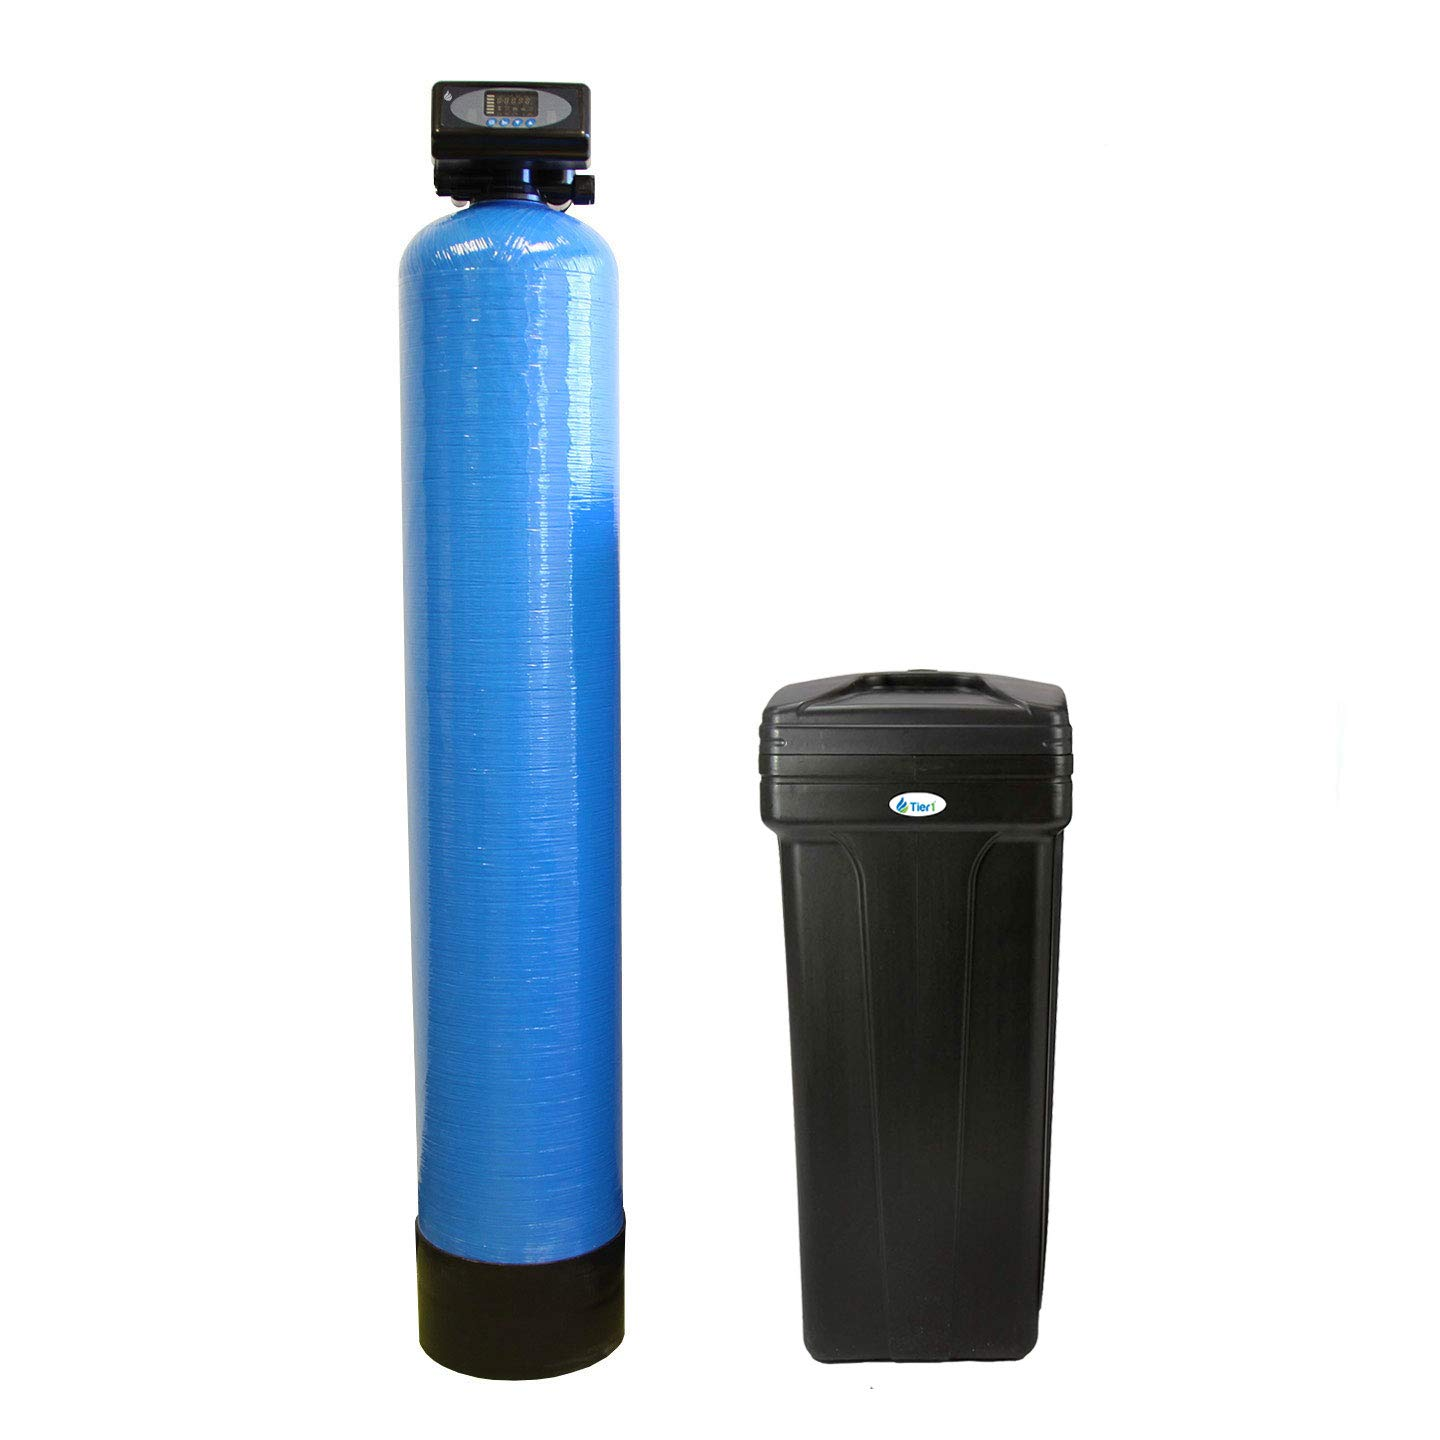 2. Tier1 Everyday Series - High Efficiency Digital Water Softener